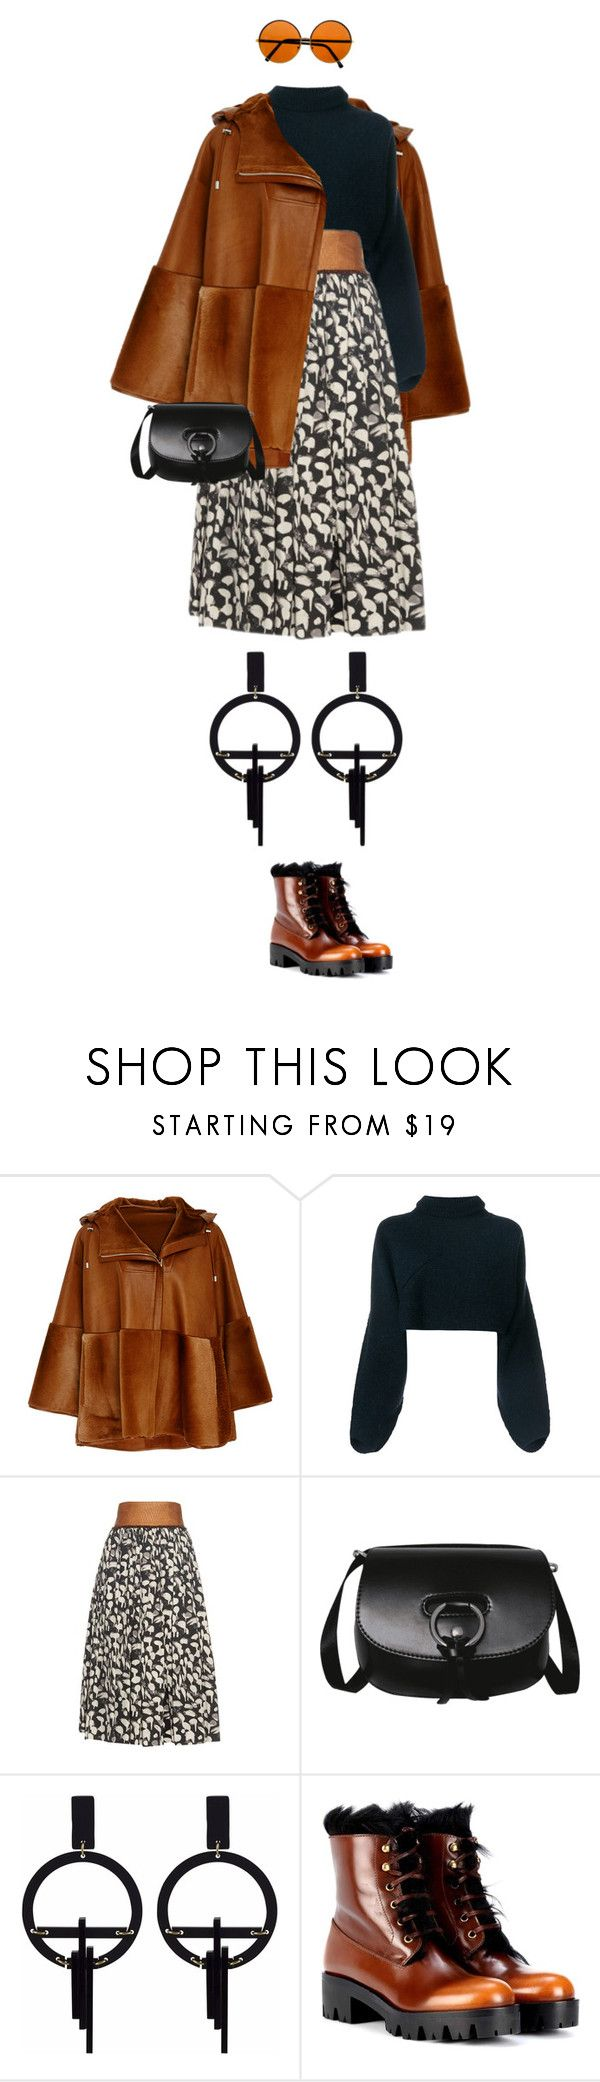 """eva1555"" by evava-c on Polyvore featuring Prabal Gurung, Victoria Beckham, Sophie Theallet, Toolally and Prada"